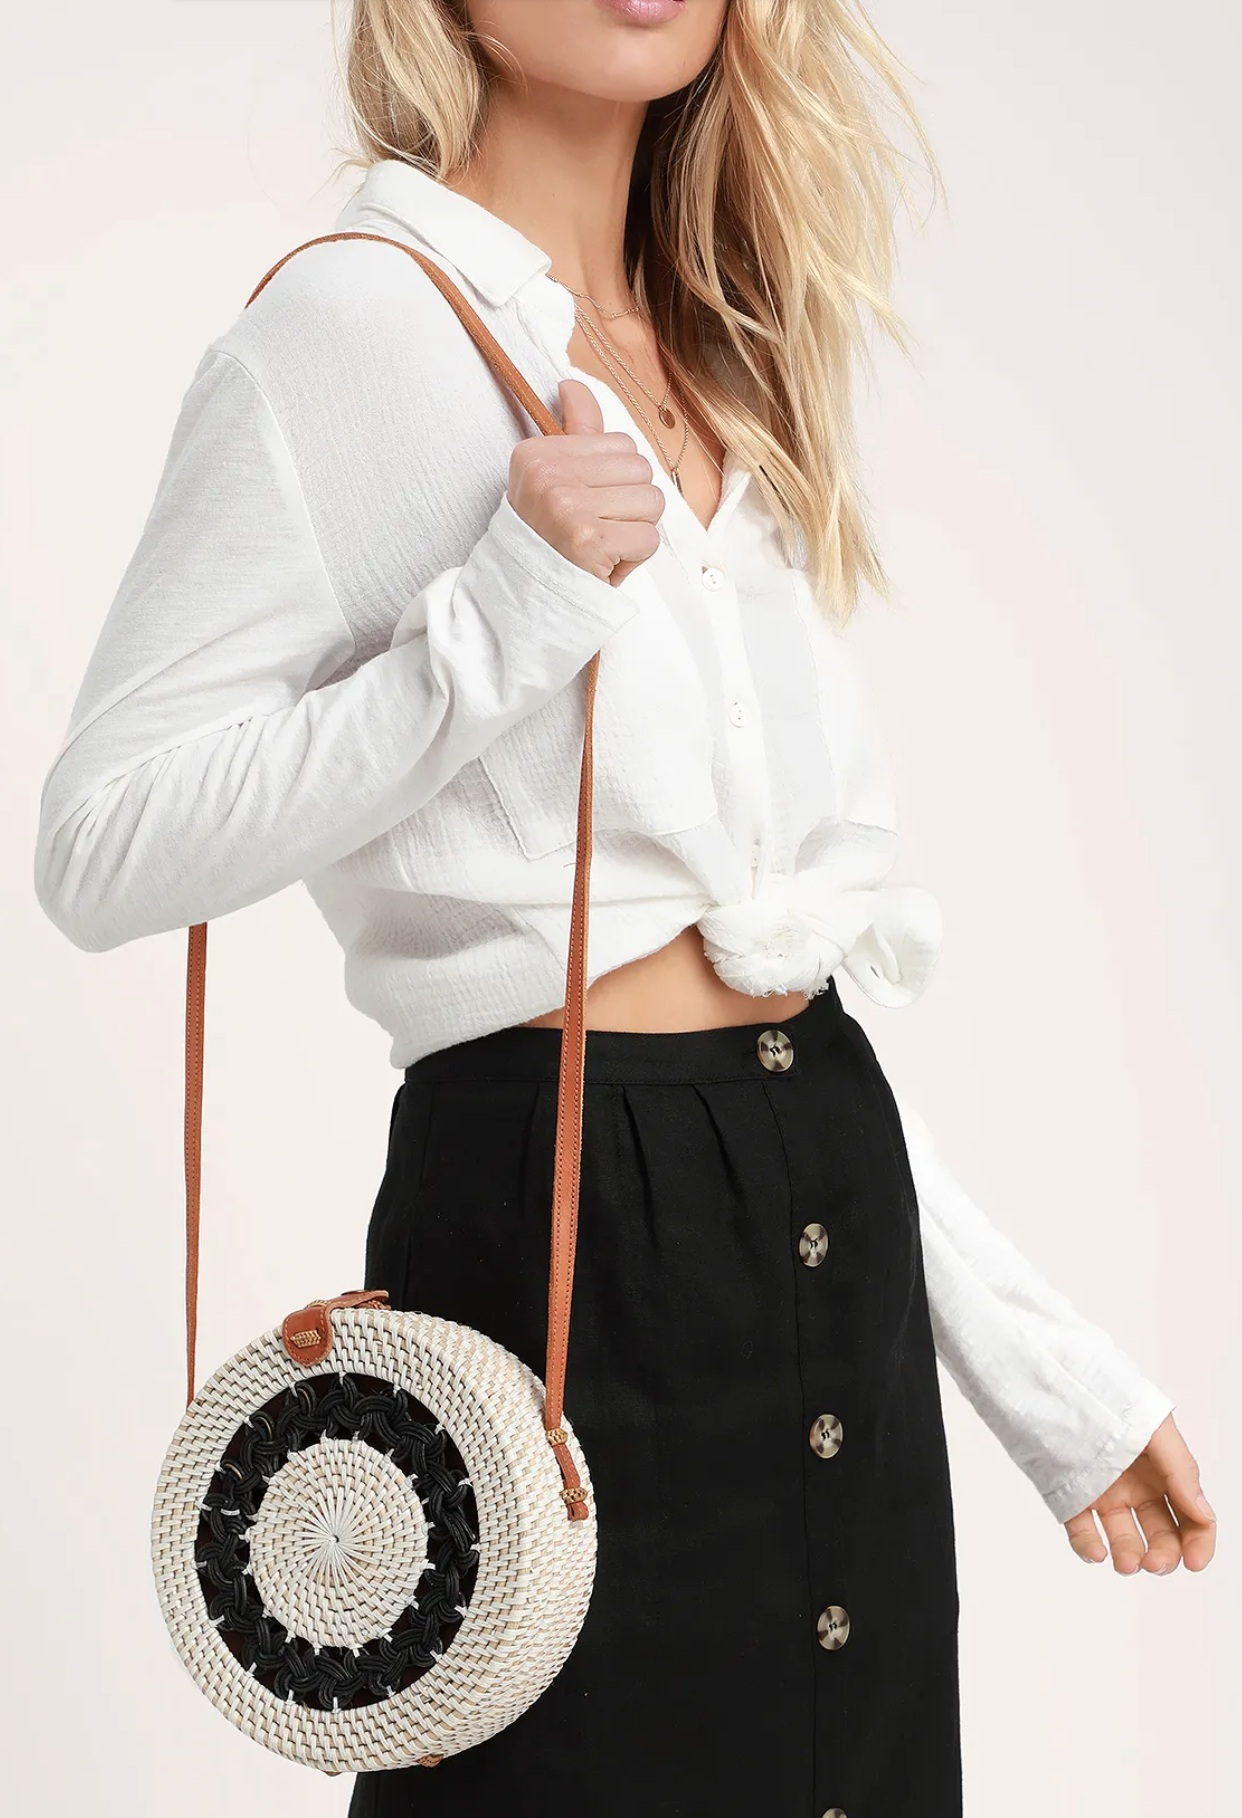 Wherever you go, go in style with the Lulus Gili Black and White Round Woven Purse! Black and white rattan shapes this woven purse with braided, cut-out inset and a circular design. Textured genuine leather shoulder strap and snap closure that opens to a roomy, fabric lined interior.